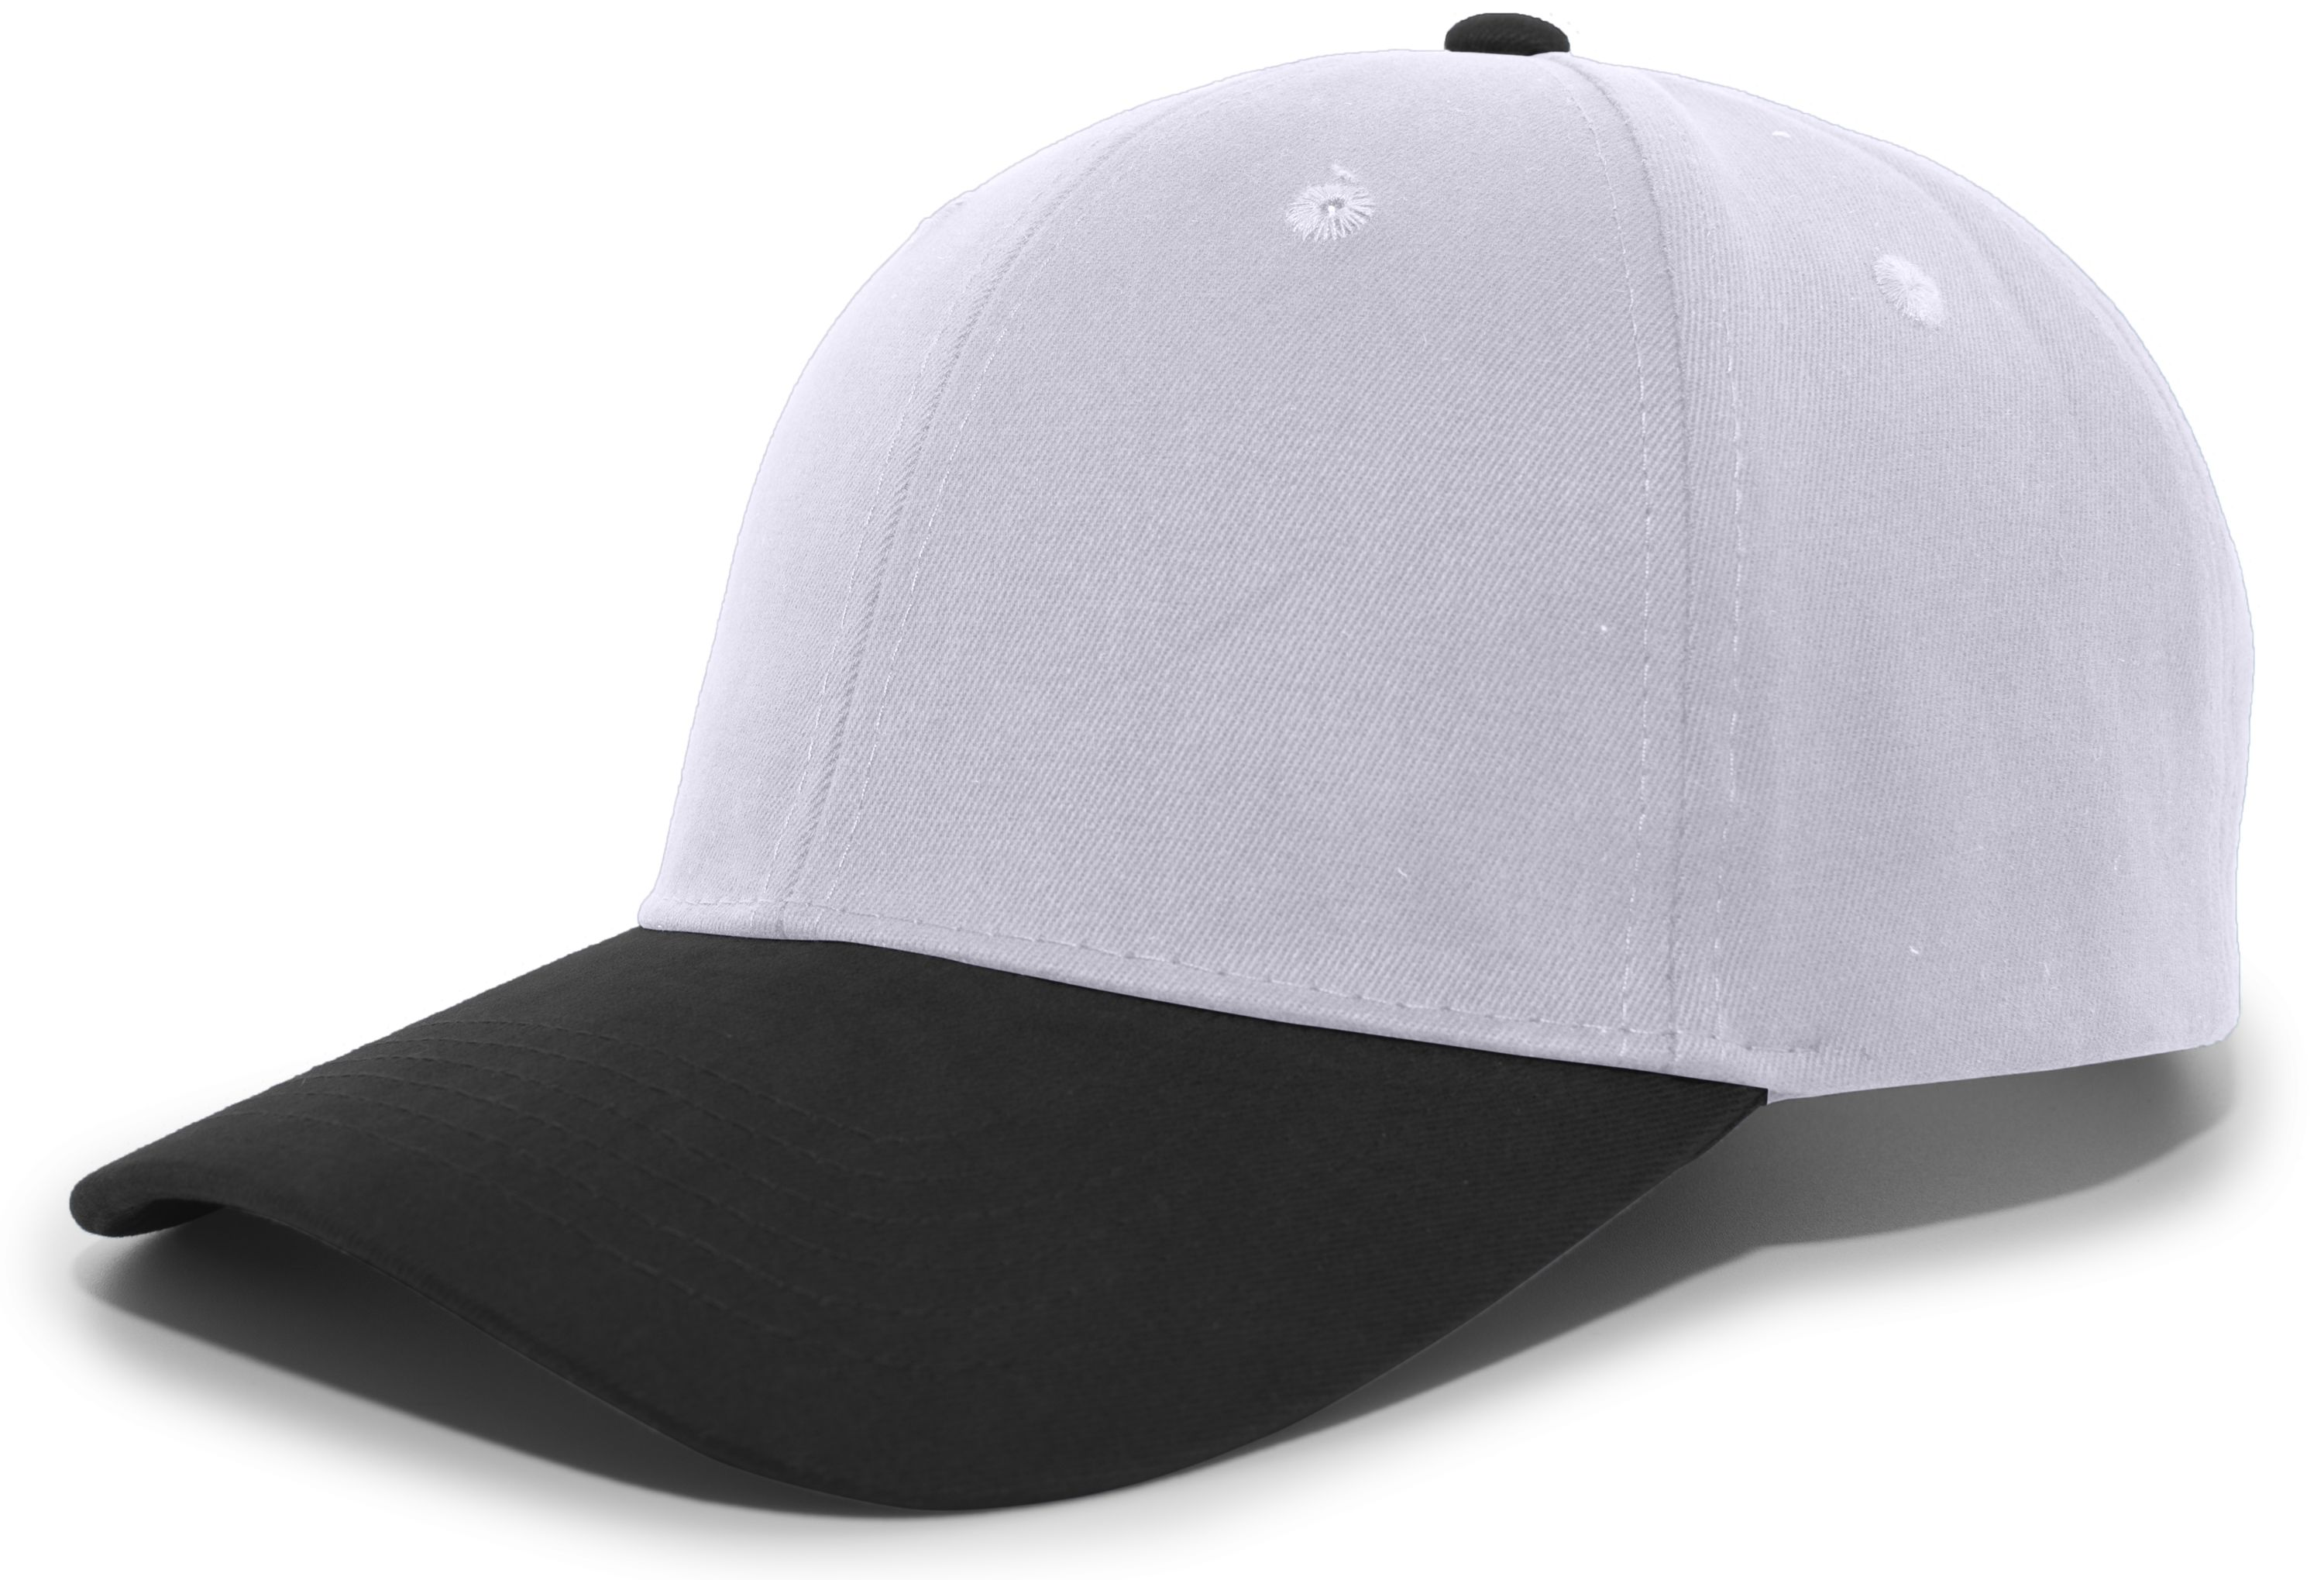 Brushed Cotton Twill Hook-And-Loop Adjustable Cap - SILVER/BLACK